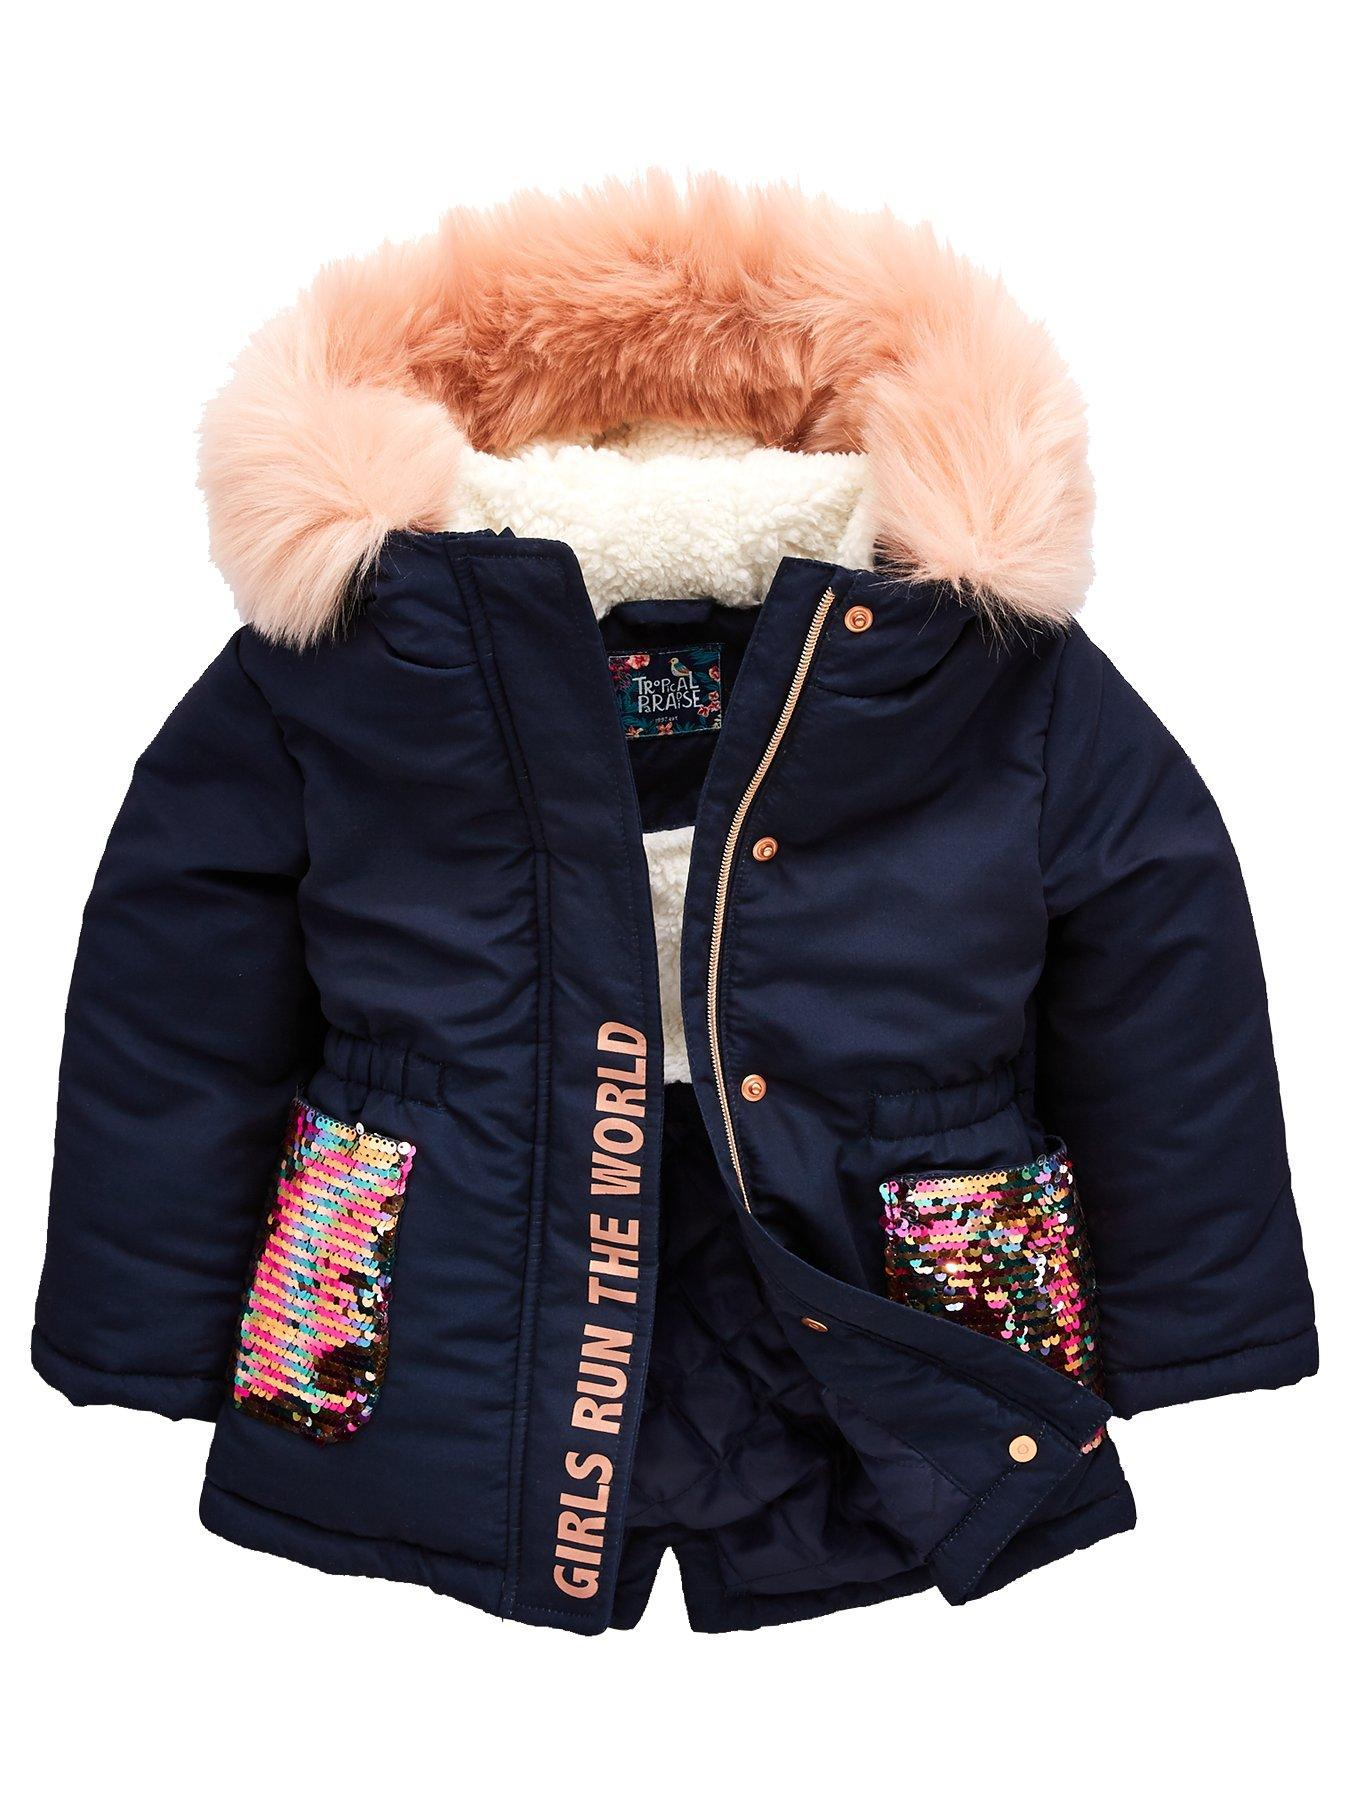 uk co Next Girls Jackets Very Delivery Day Girls Coats 8ZBOqPqw